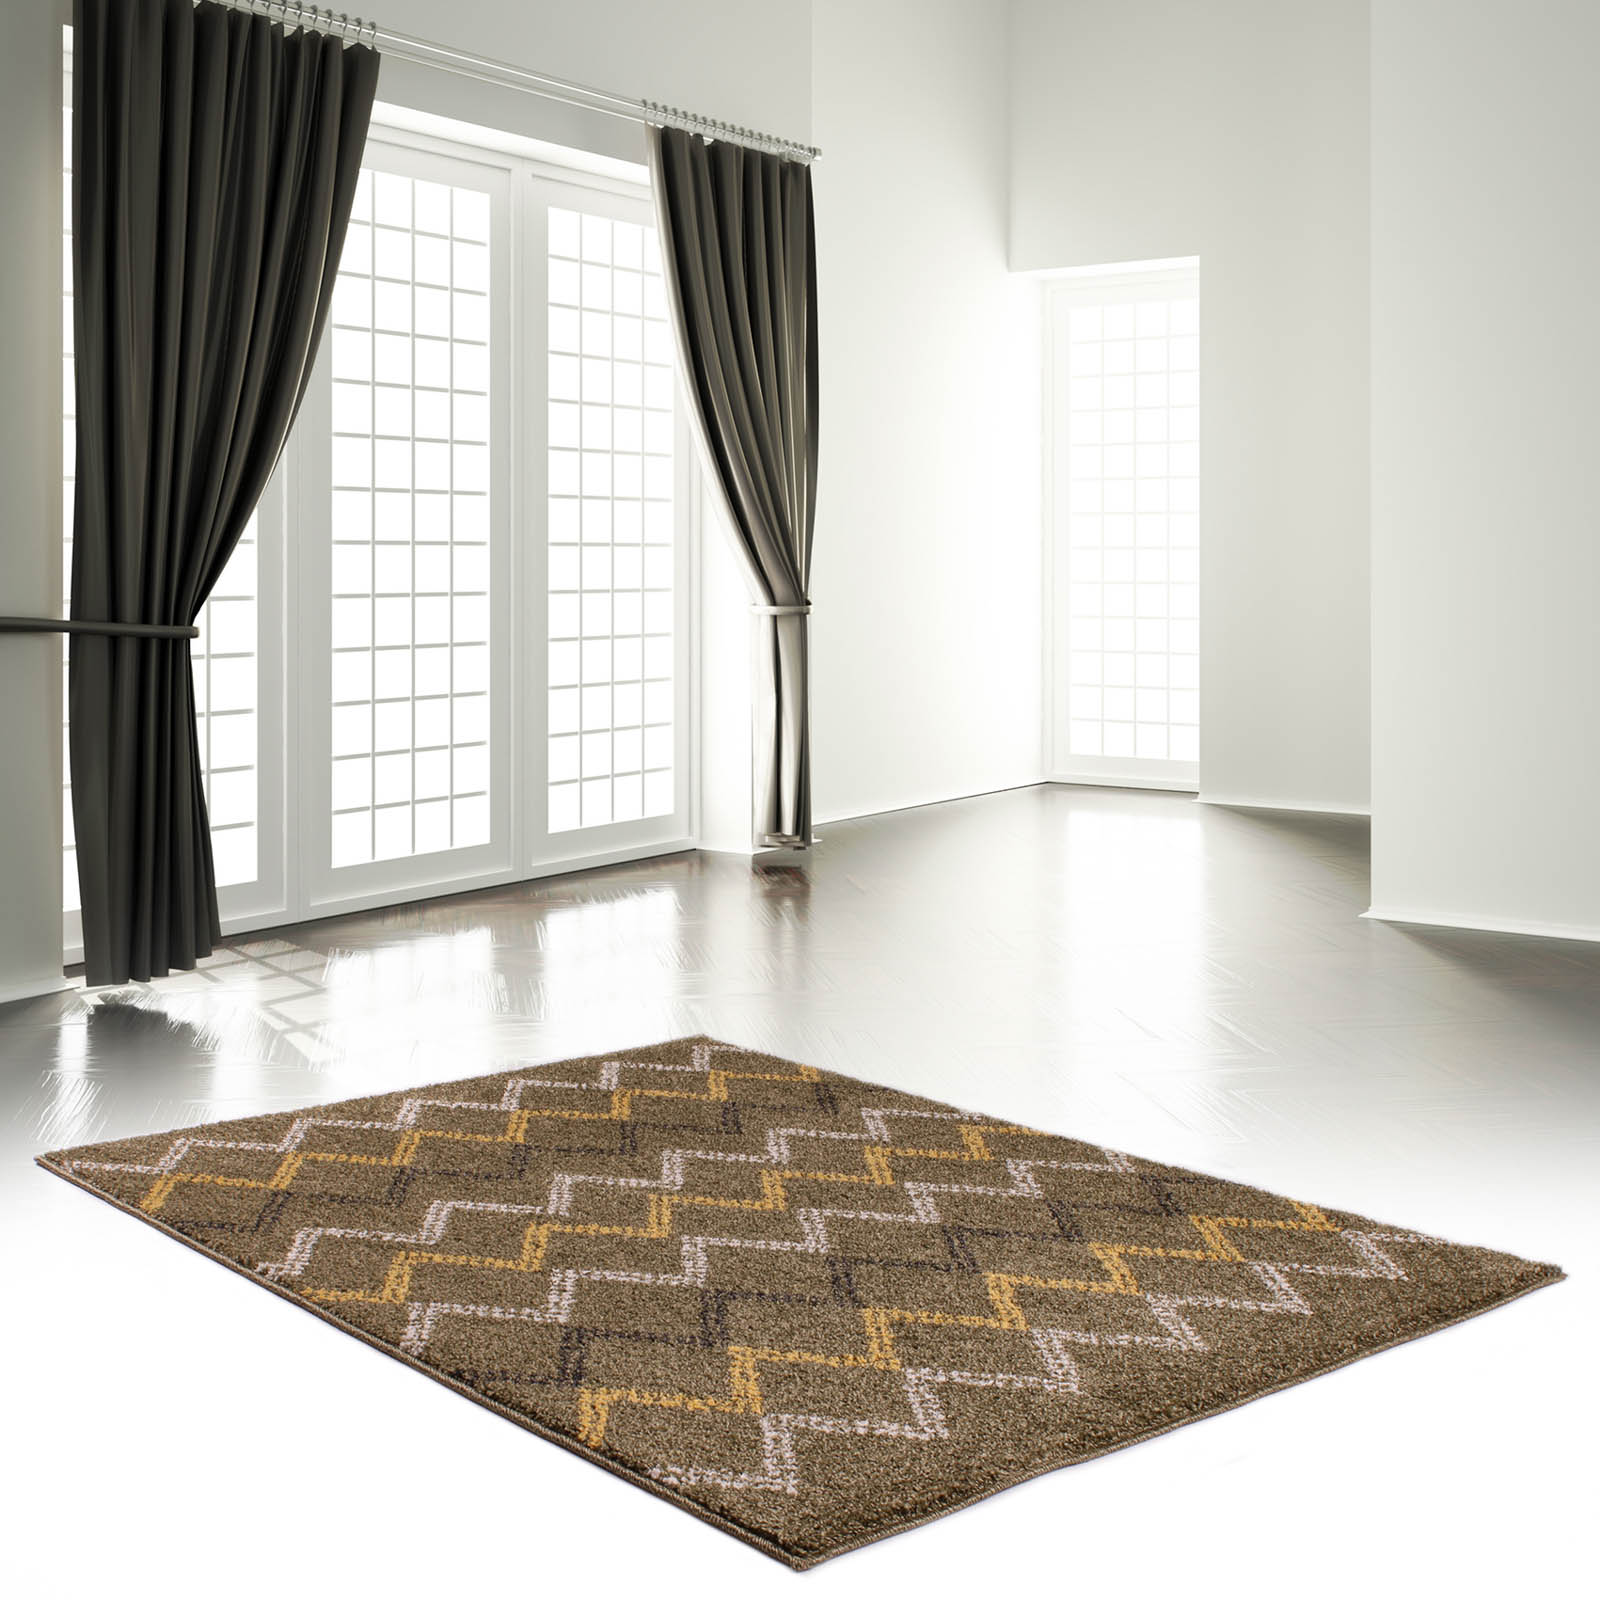 Marrakesh Rugs 2651 in Green and Brown